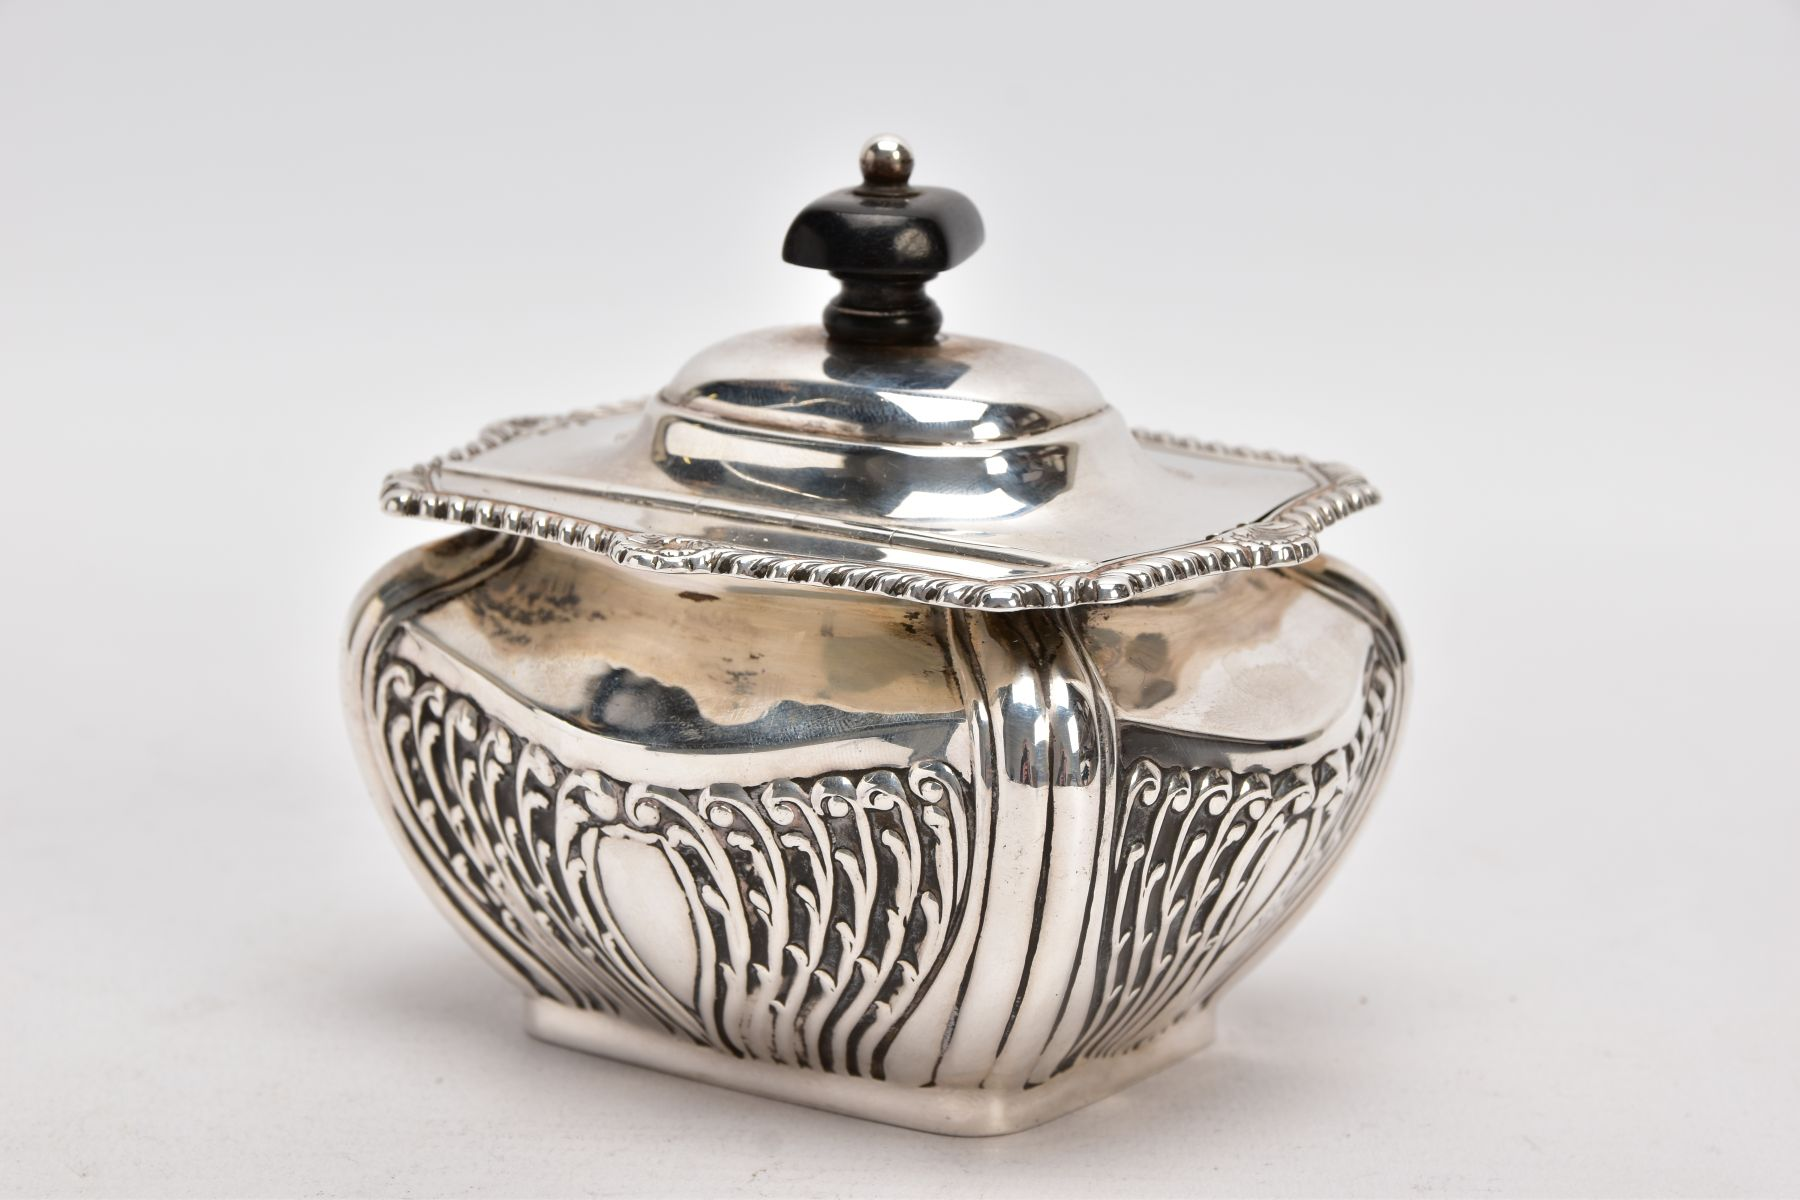 AN EDWARDIAN SILVER TEA CADDY, bomb shaped sucrier with hinged cover, gadrooned and shell cast - Image 5 of 6